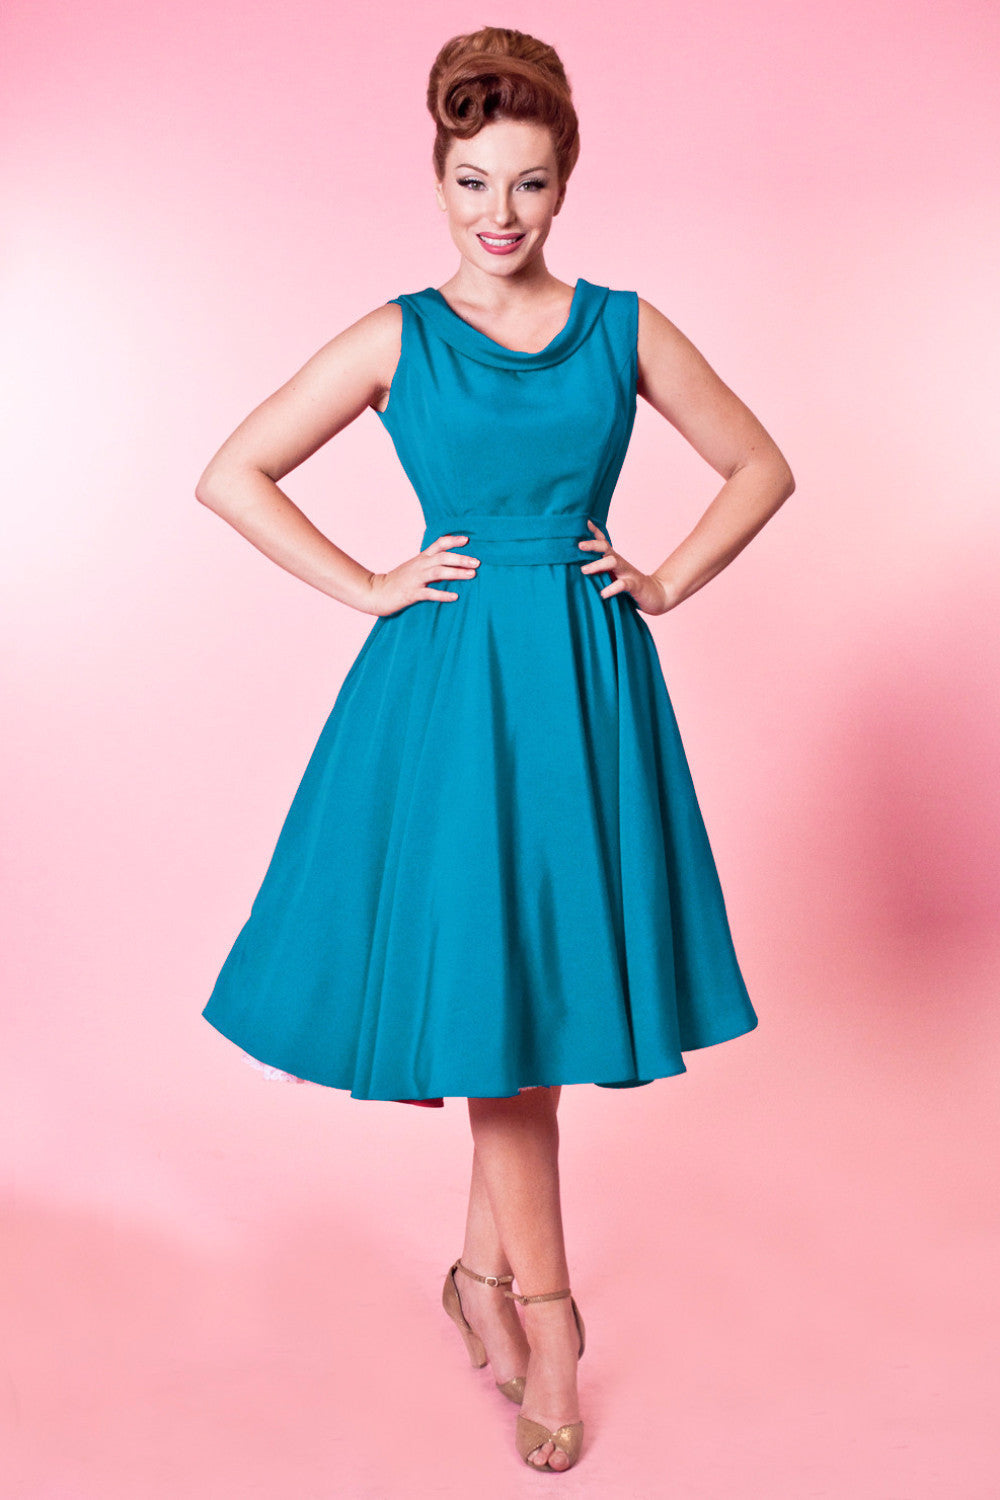 BP Suzette Dress - Tuscany Silkie Teal - Heart of Haute  - 1